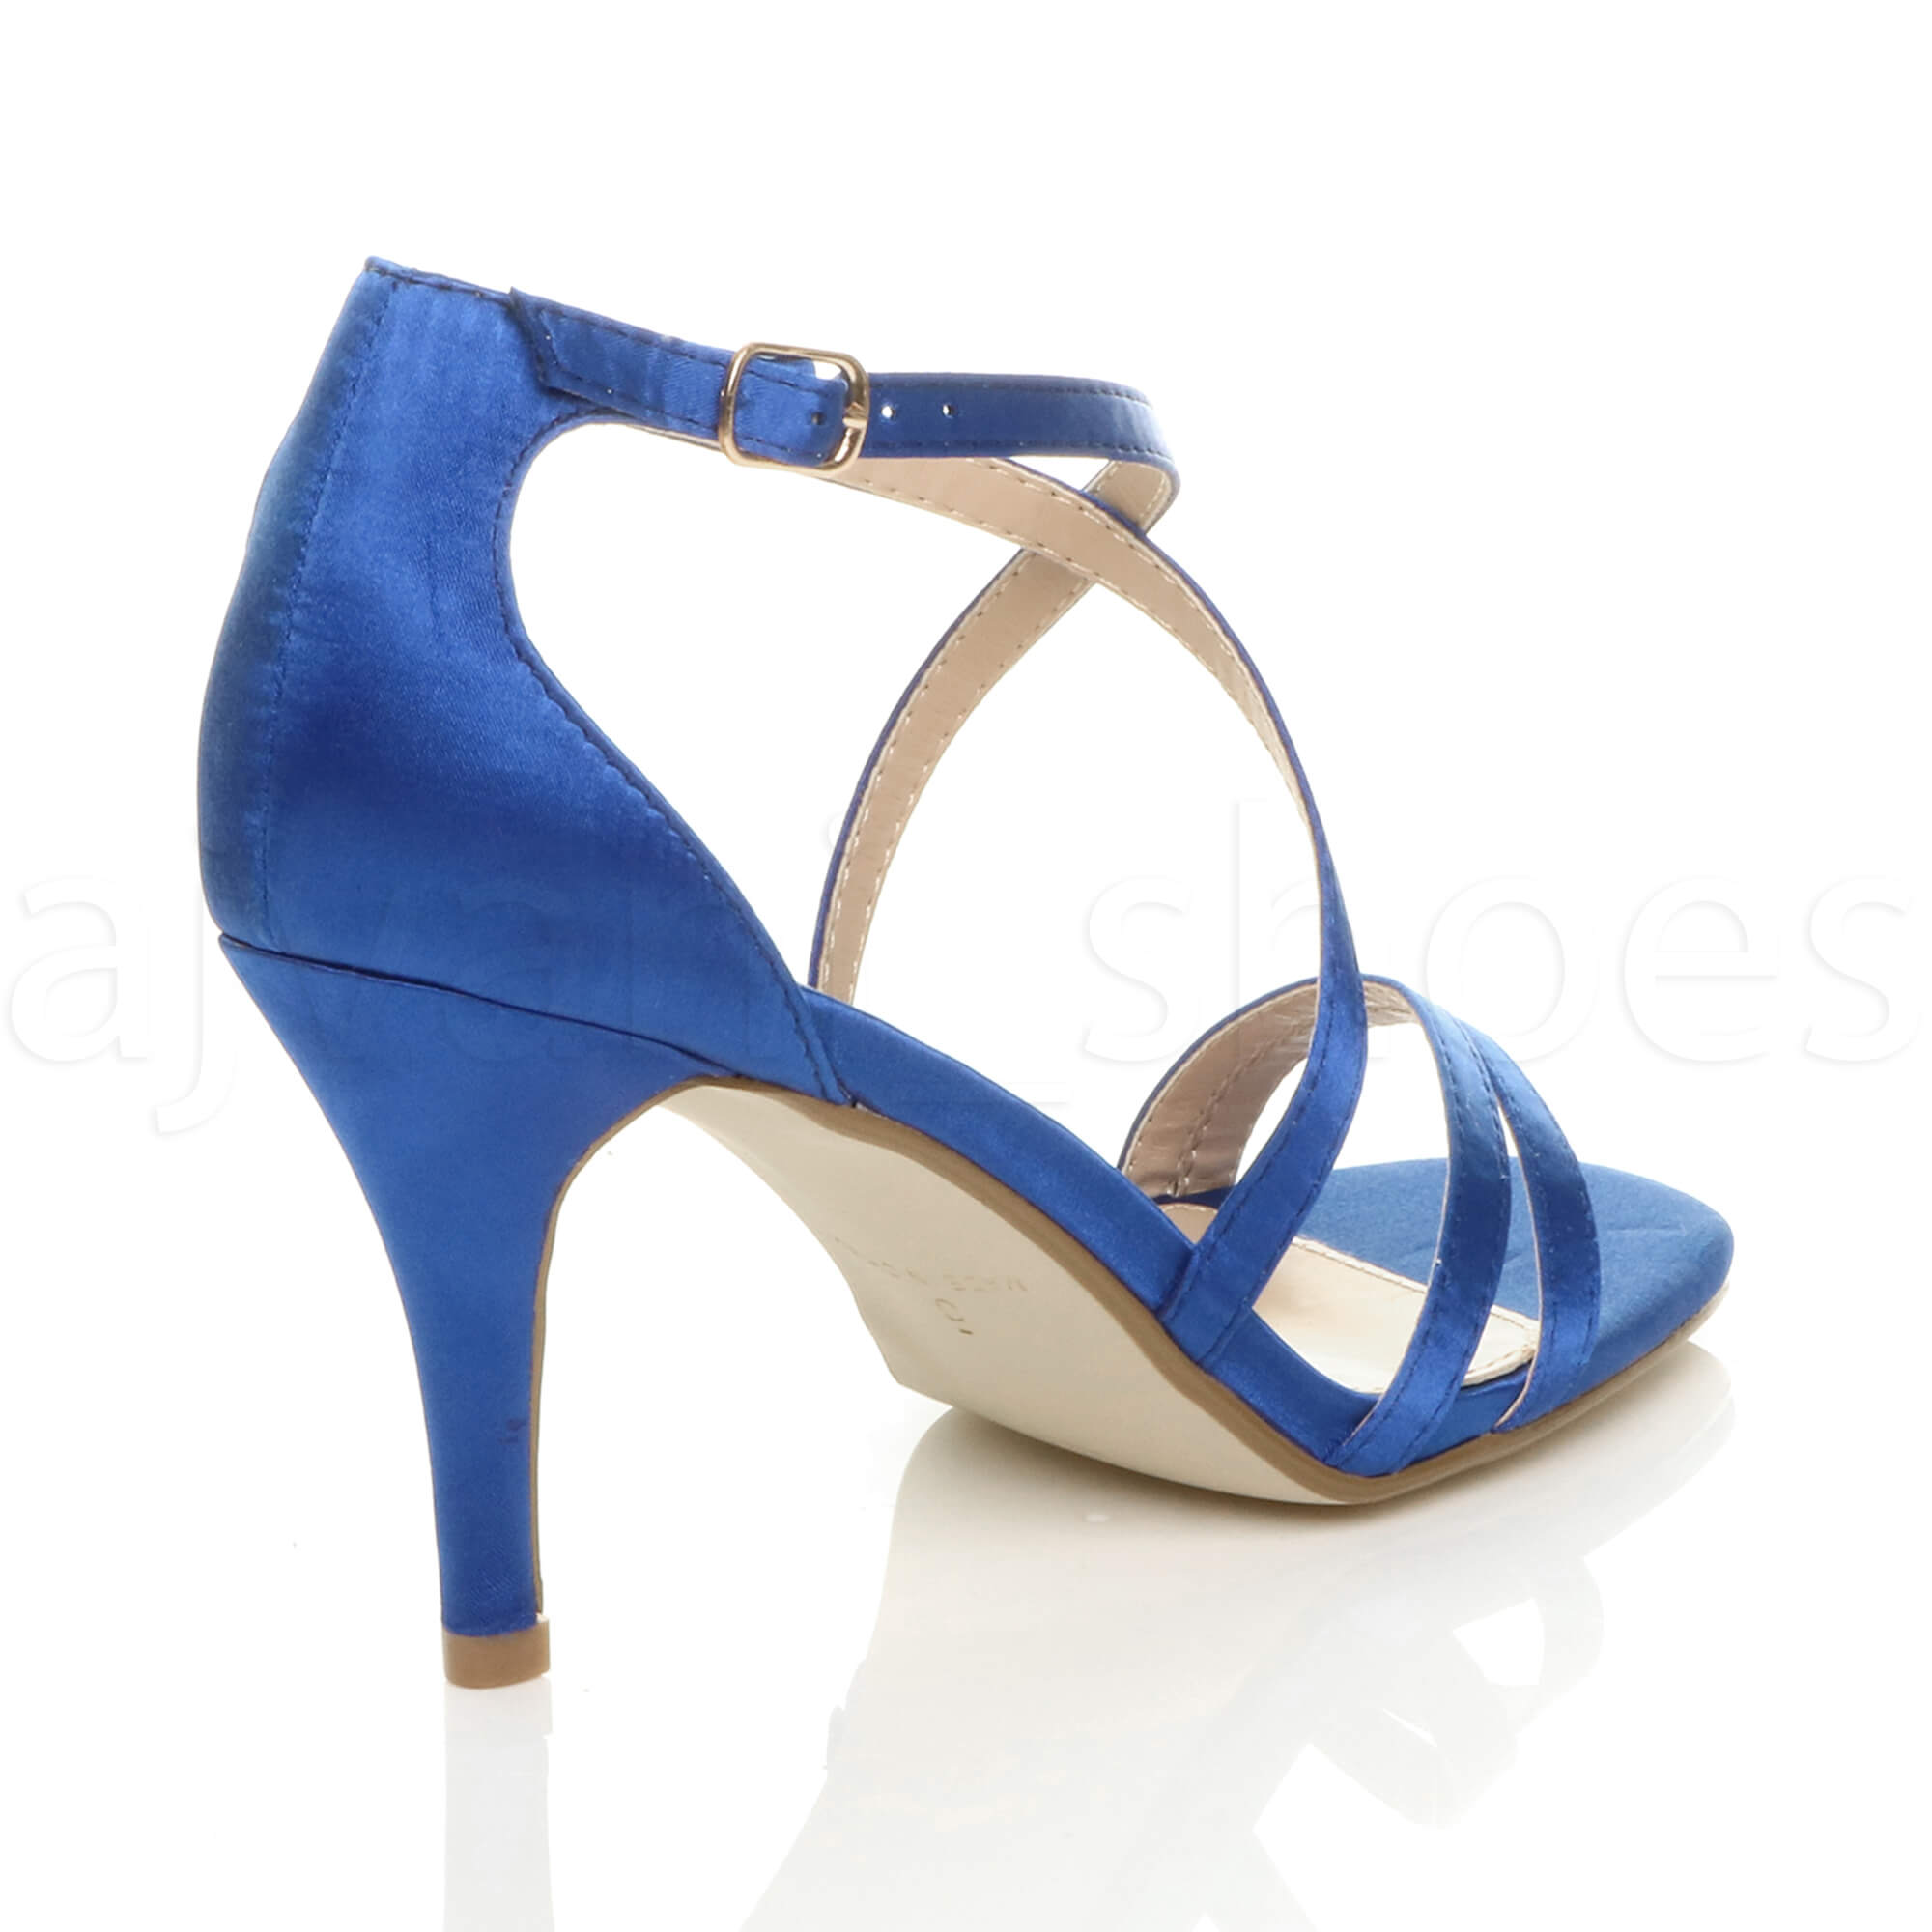 WOMENS-LADIES-MID-HIGH-HEEL-STRAPPY-CROSSOVER-WEDDING-PROM-SANDALS-SHOES-SIZE thumbnail 103